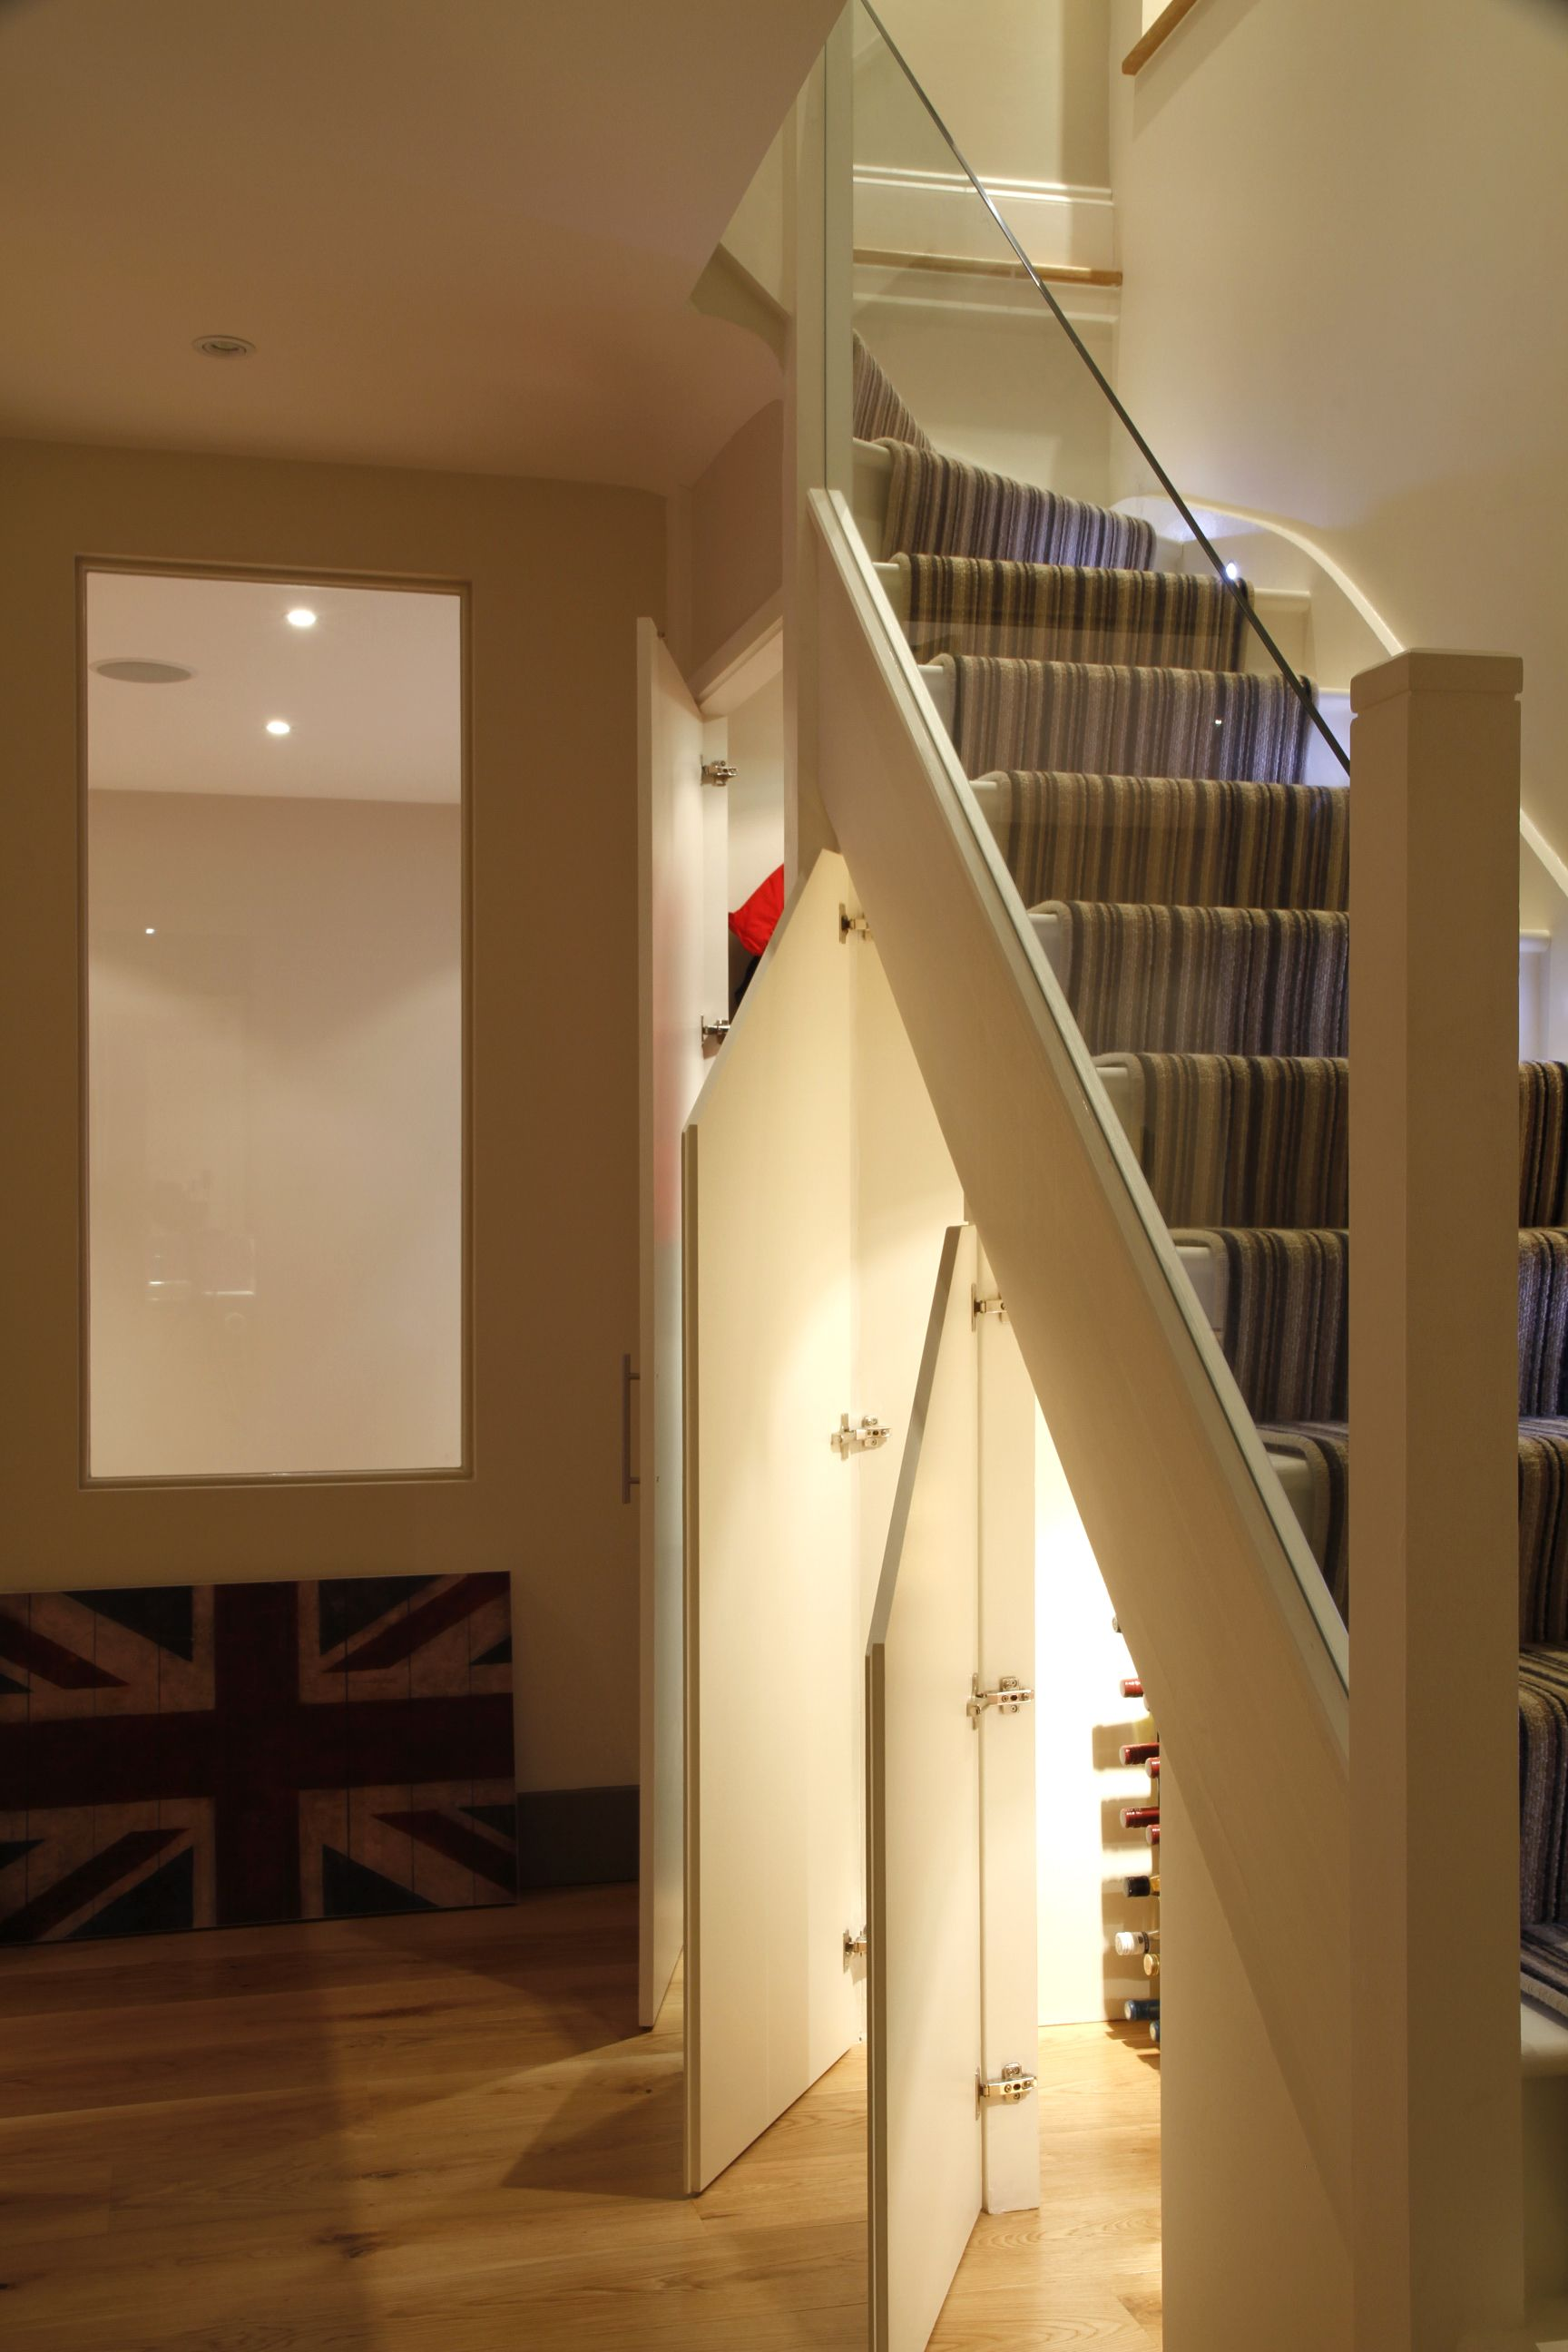 Basement Staircase, With Storage Below